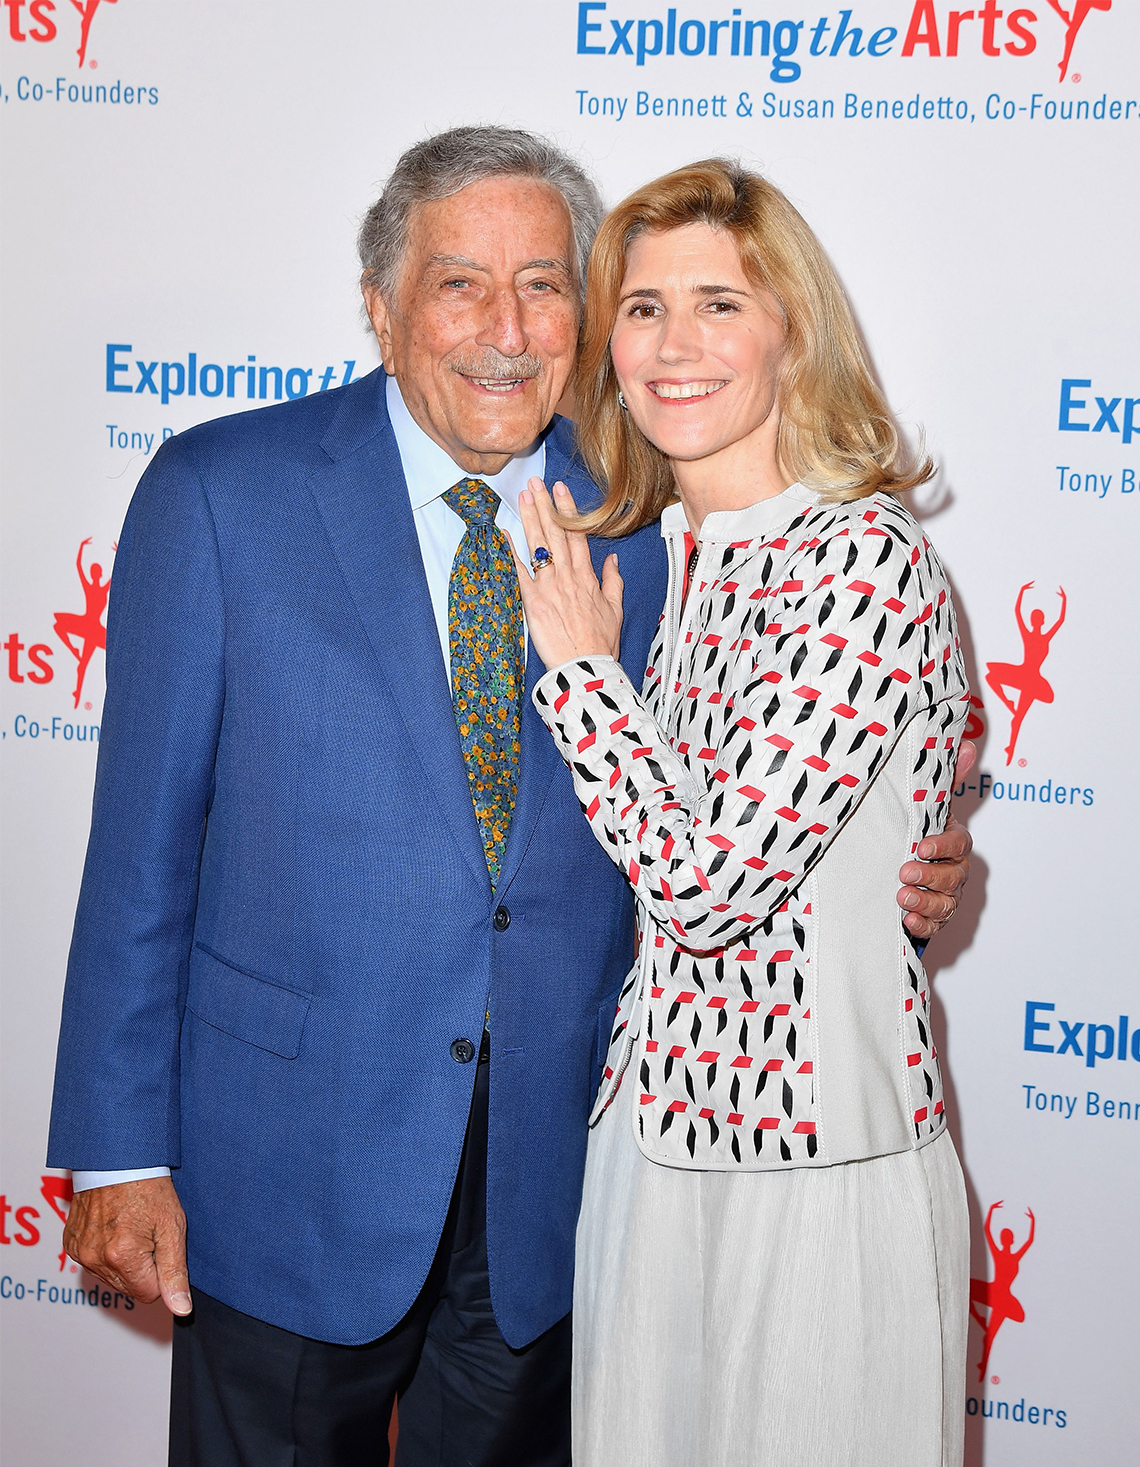 tony bennett and his wife susan in new york city 2019